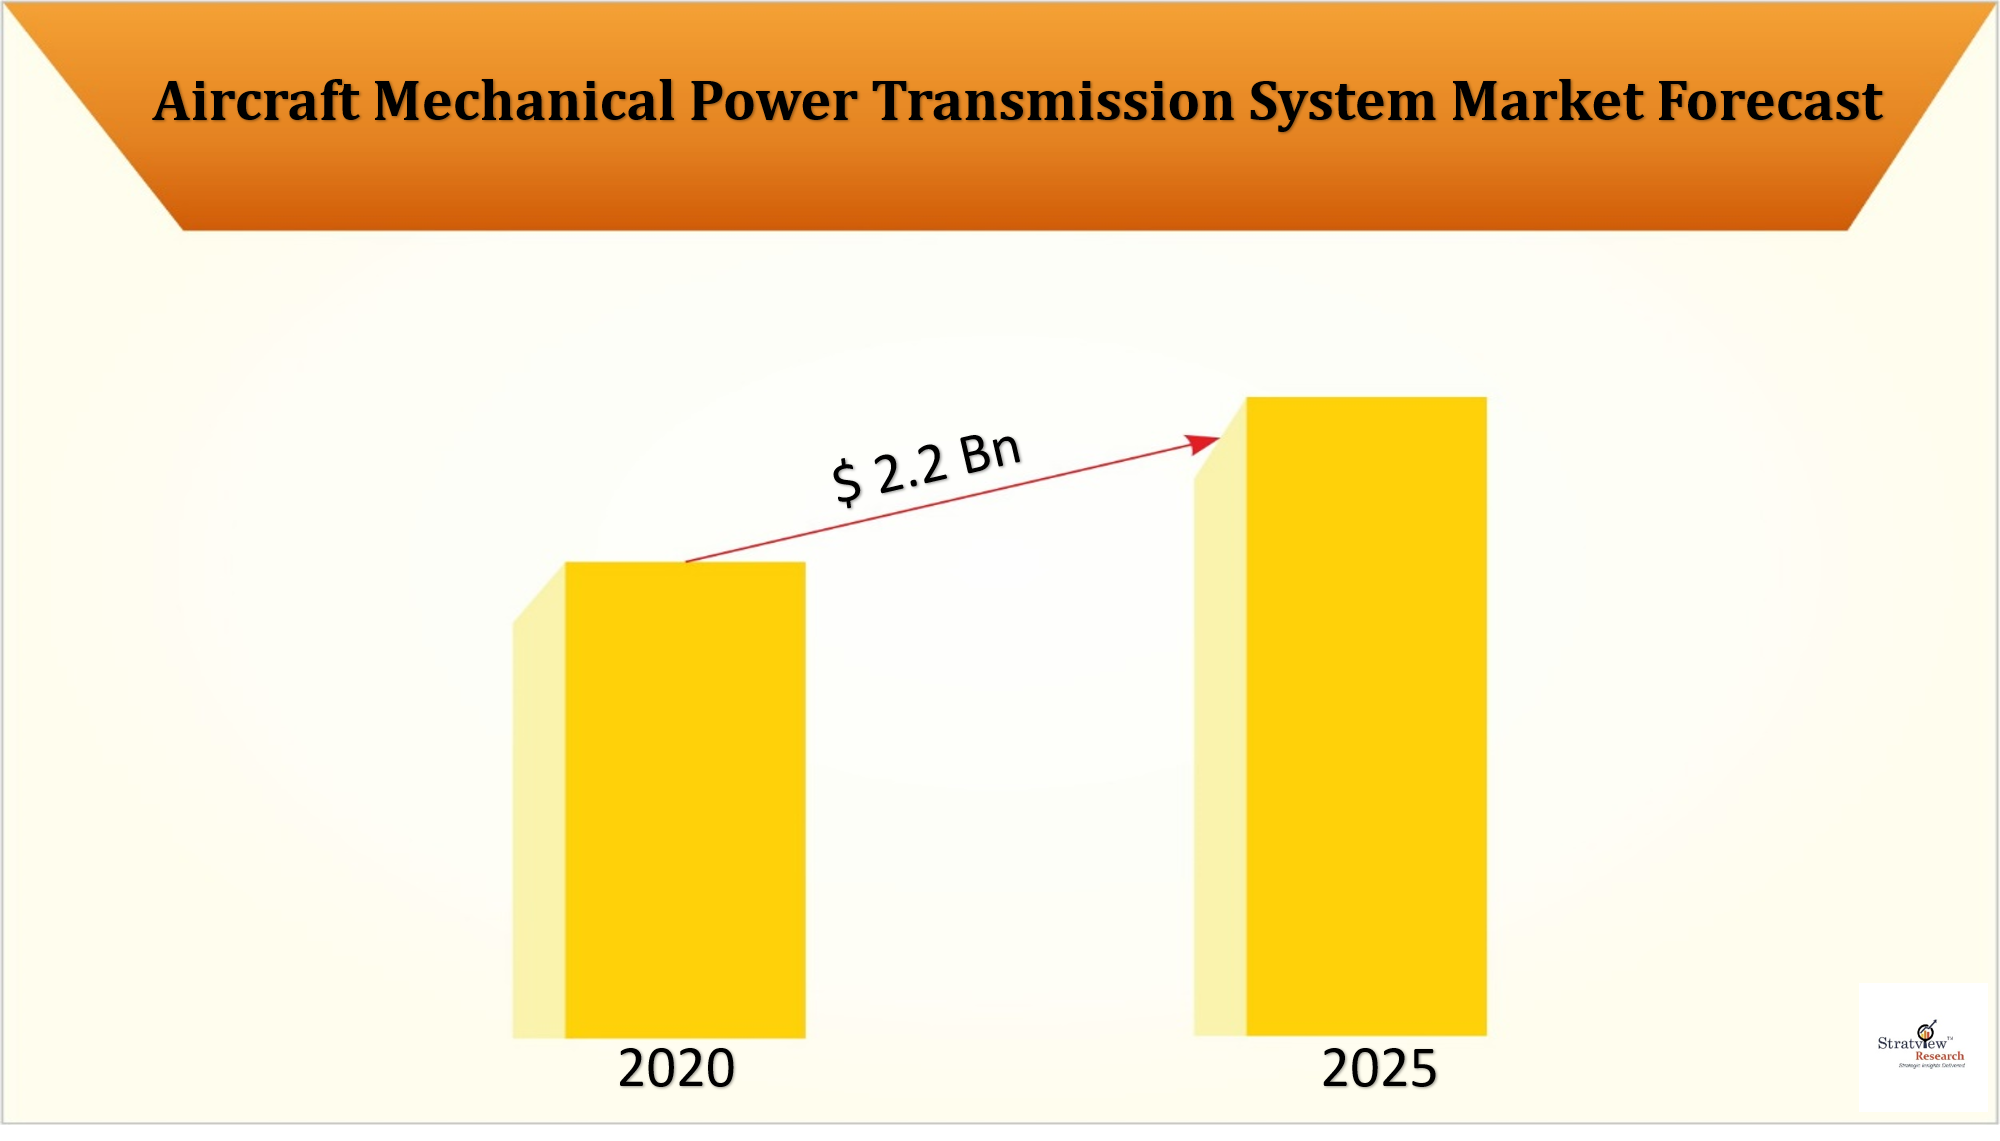 The changing dynamics in Aircraft Mechanical Power Transmission System Market with covid-19 impact assessment.